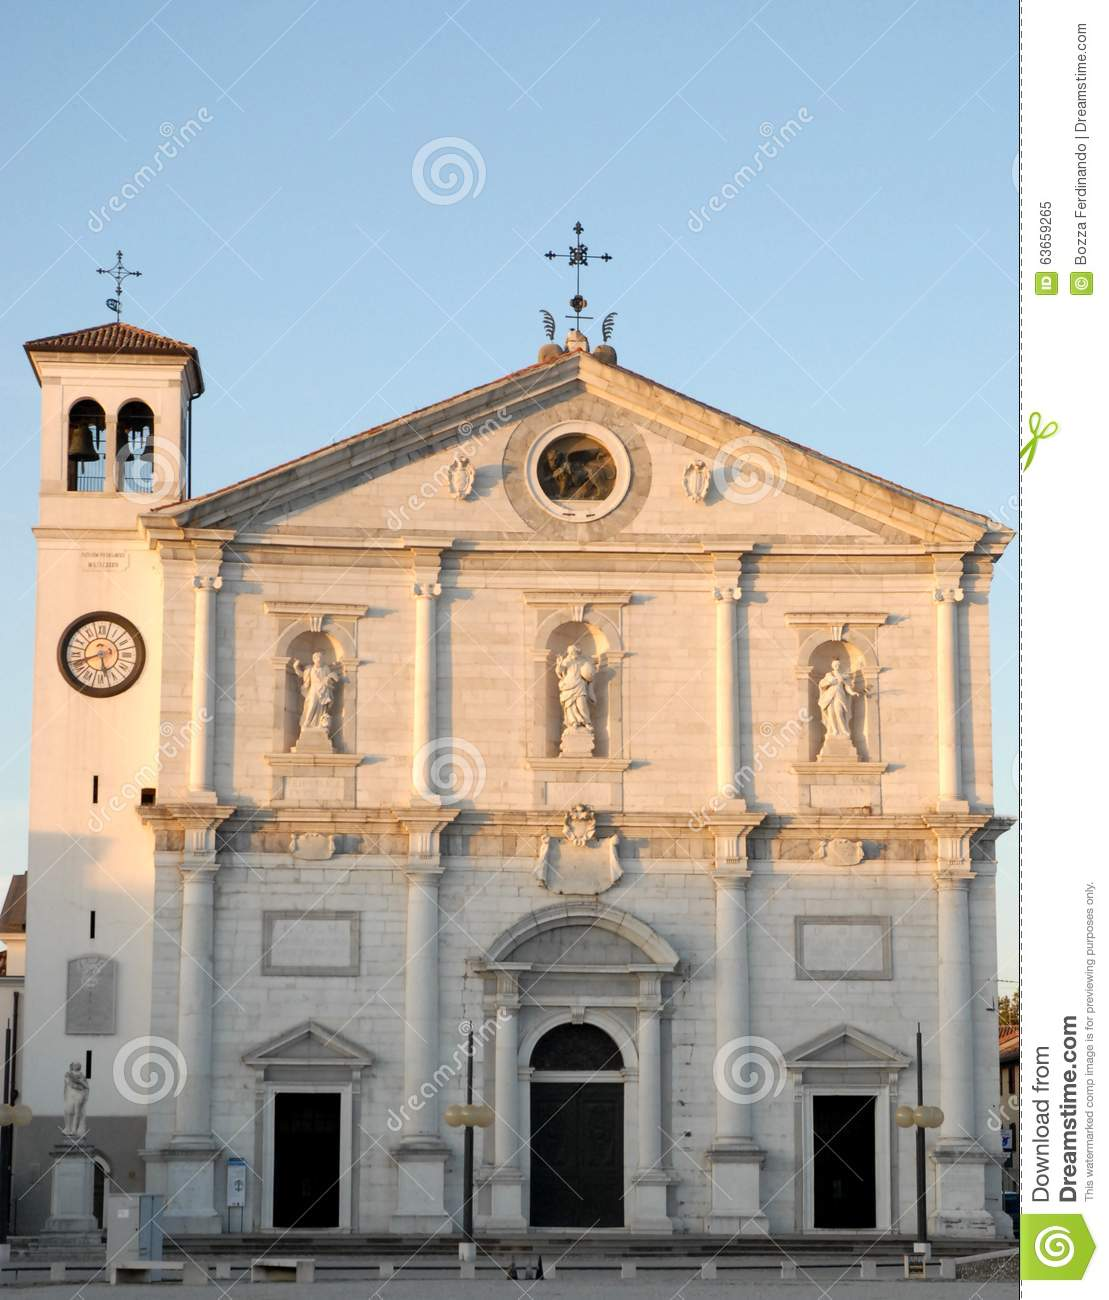 Facade of the church, with three statues, illuminated by the setting sun in Palmanova in Friuli (Italy)